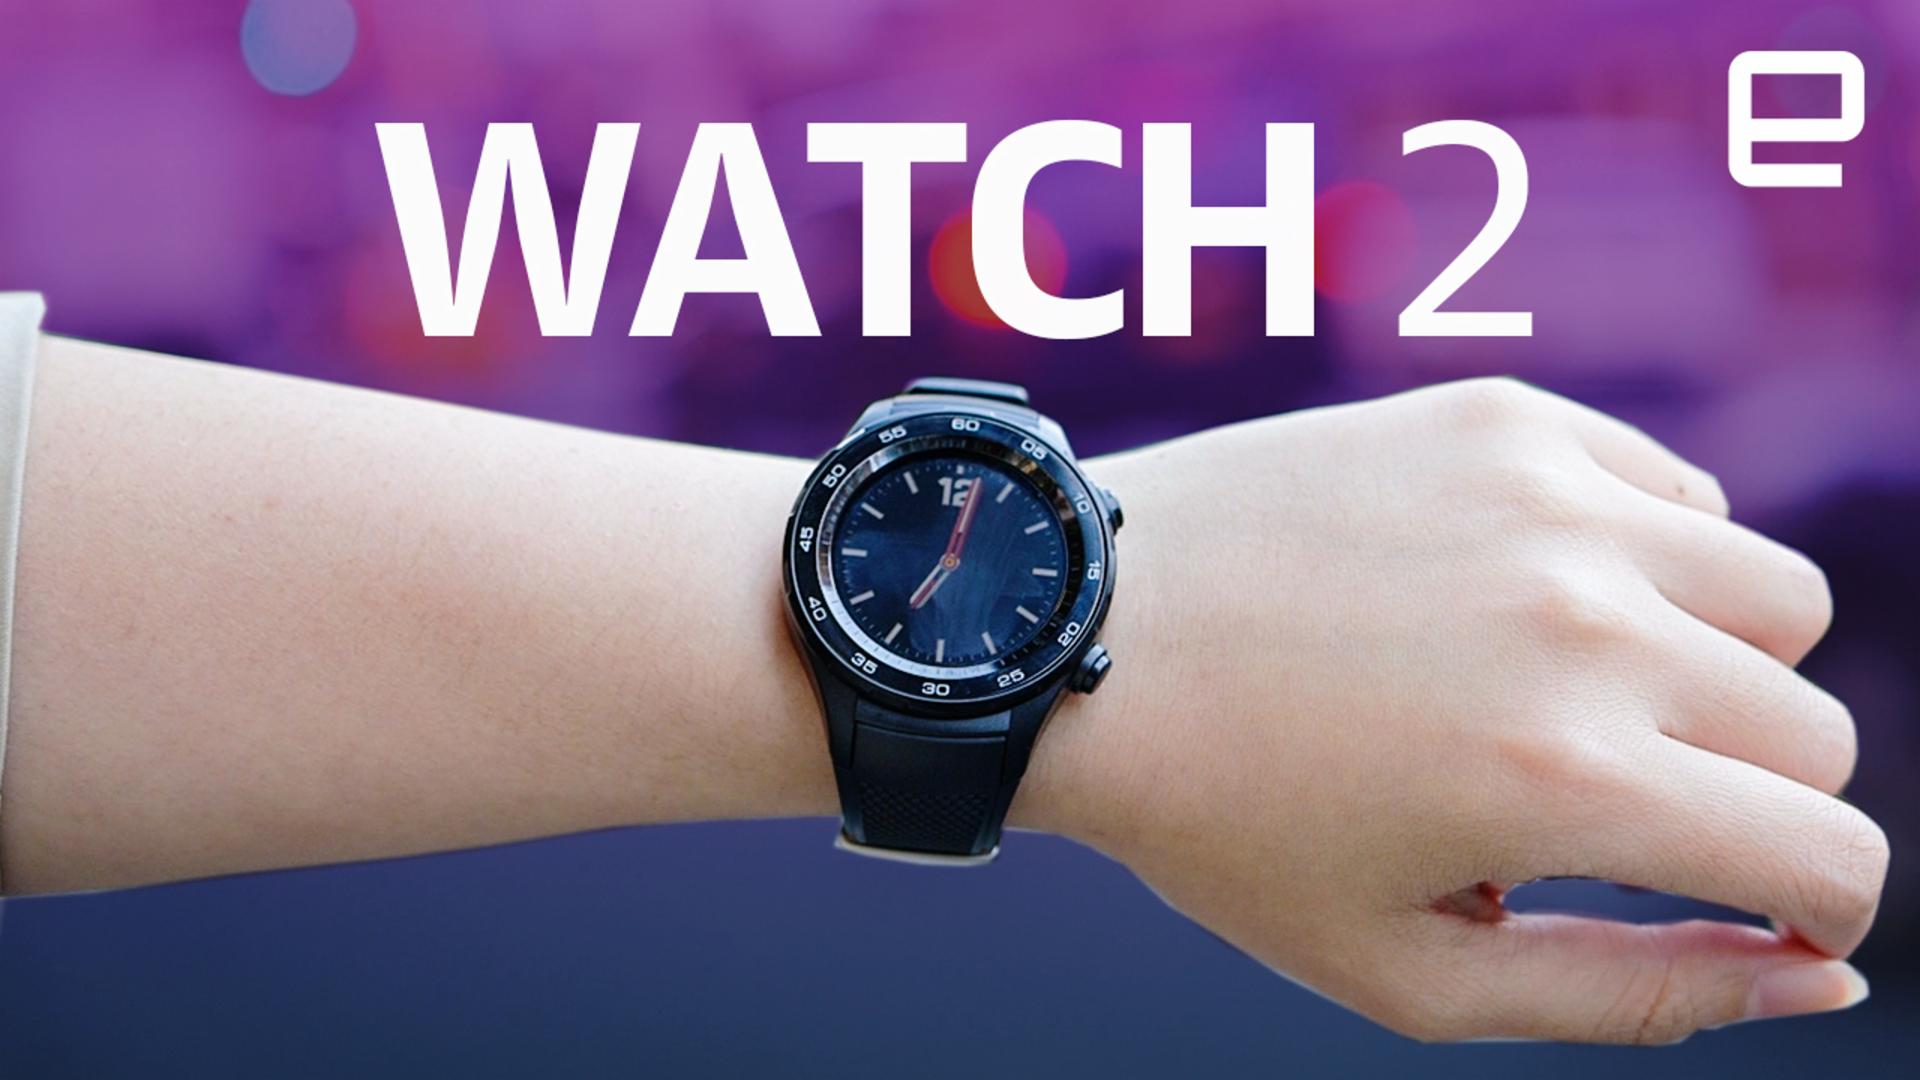 Huawei's Watch 2 can last for weeks without its smarts | Engadget